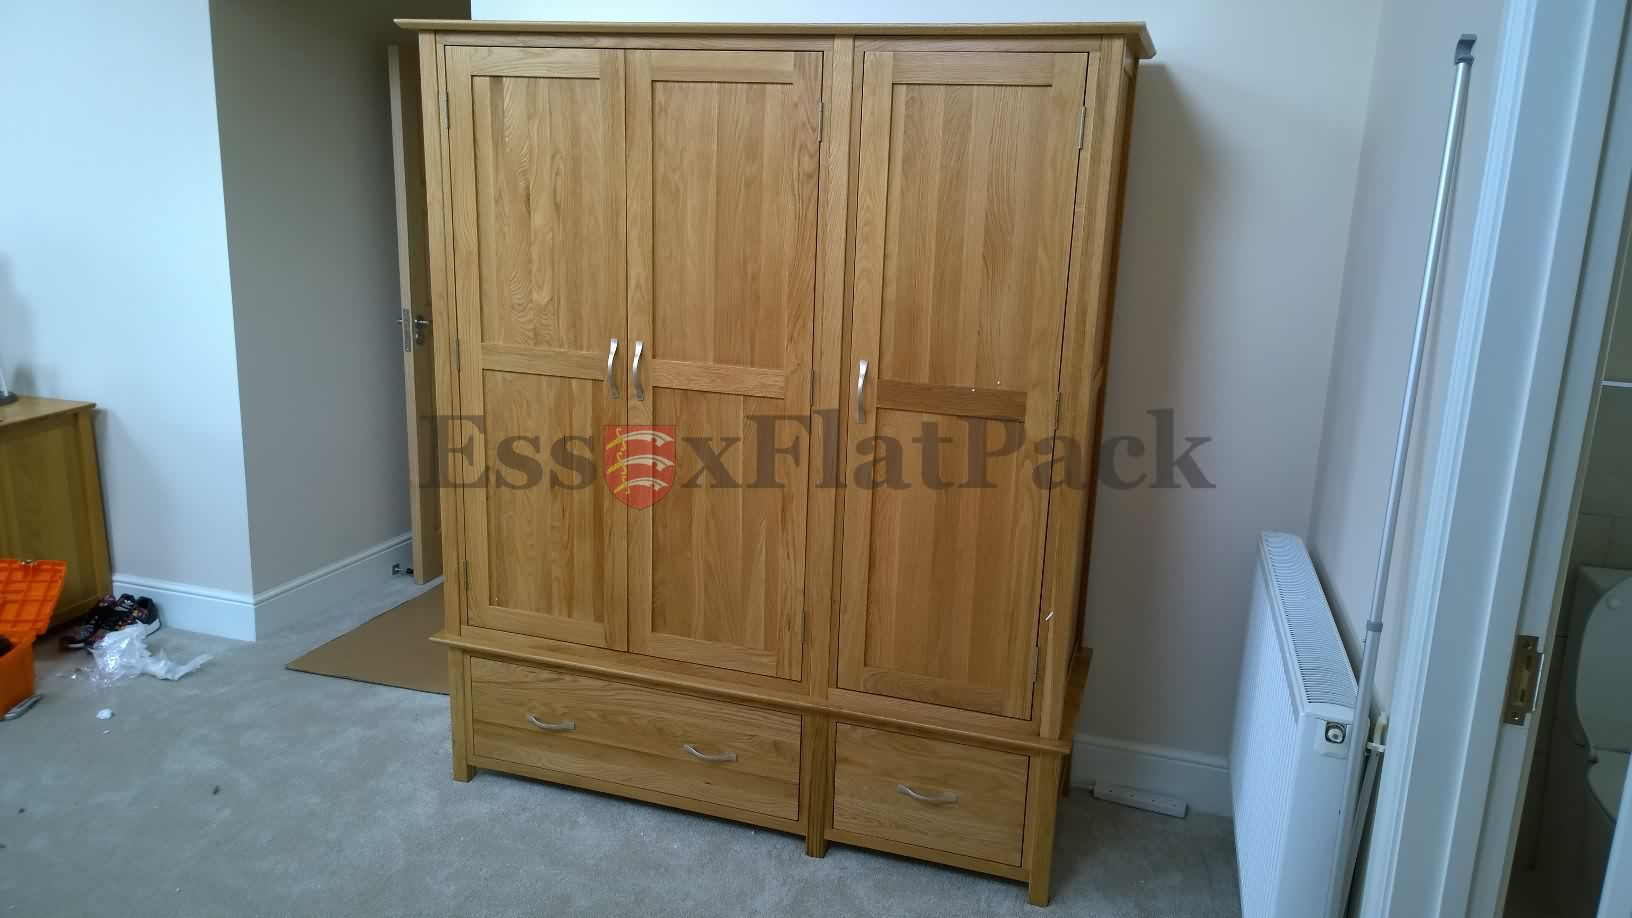 what is flat pack furniture. Essexflatpack-furniture-20170323112330.jpg What Is Flat Pack Furniture